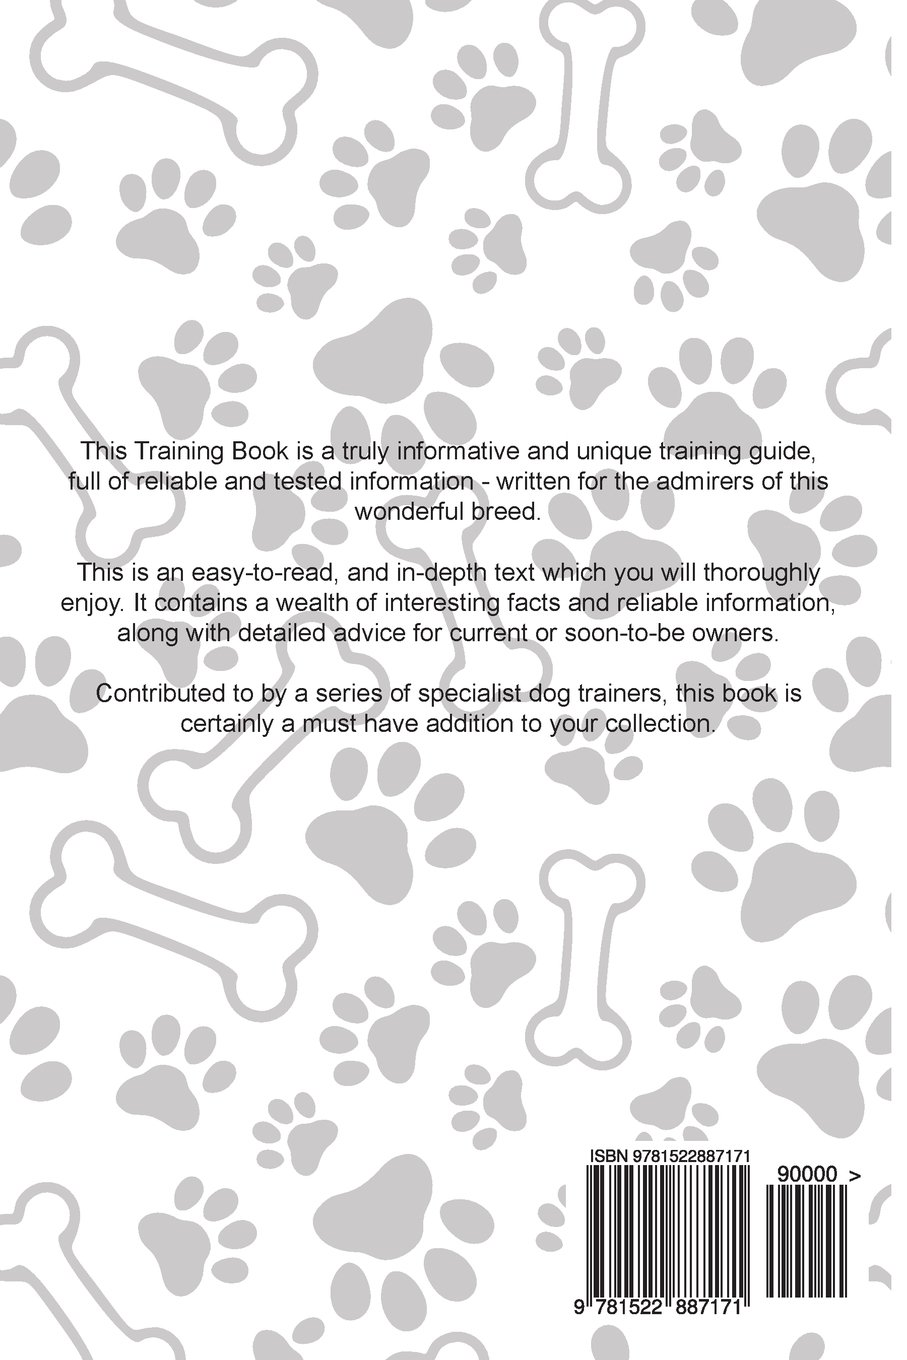 Cane corso training guide cane corso training book includes cane cane corso training guide cane corso training book includes cane corso socializing housetraining obedience training behavioral training cues commands geenschuldenfo Gallery